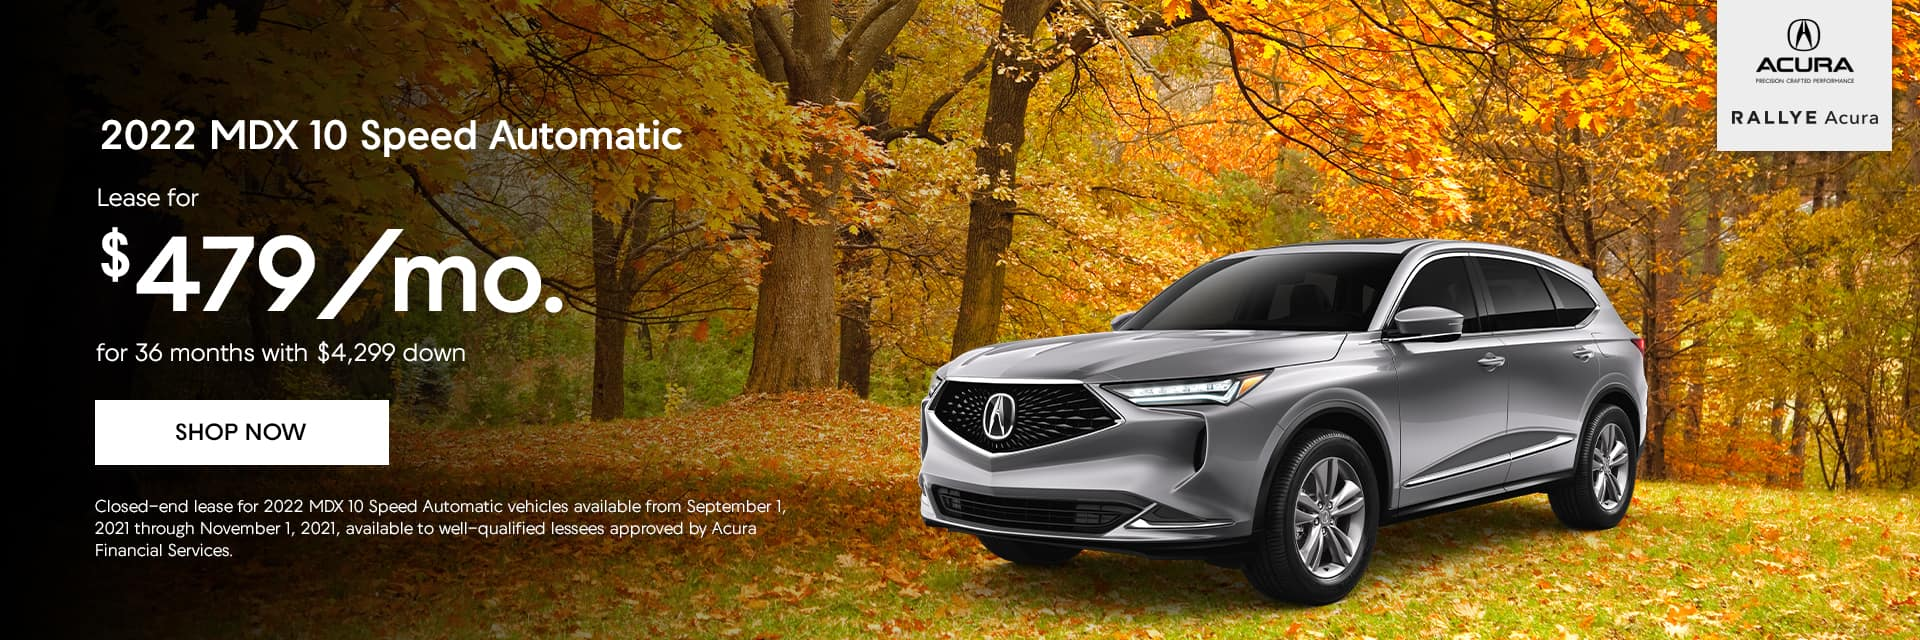 Lease a 2022 MDX 10 Speed Automatic, $479/mo. for 36 months with $4,299 down.